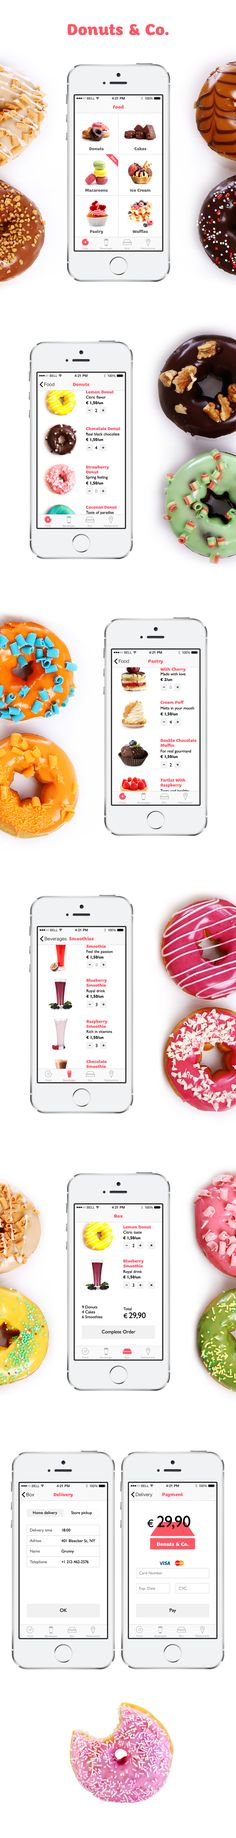 Donuts & Co. App by